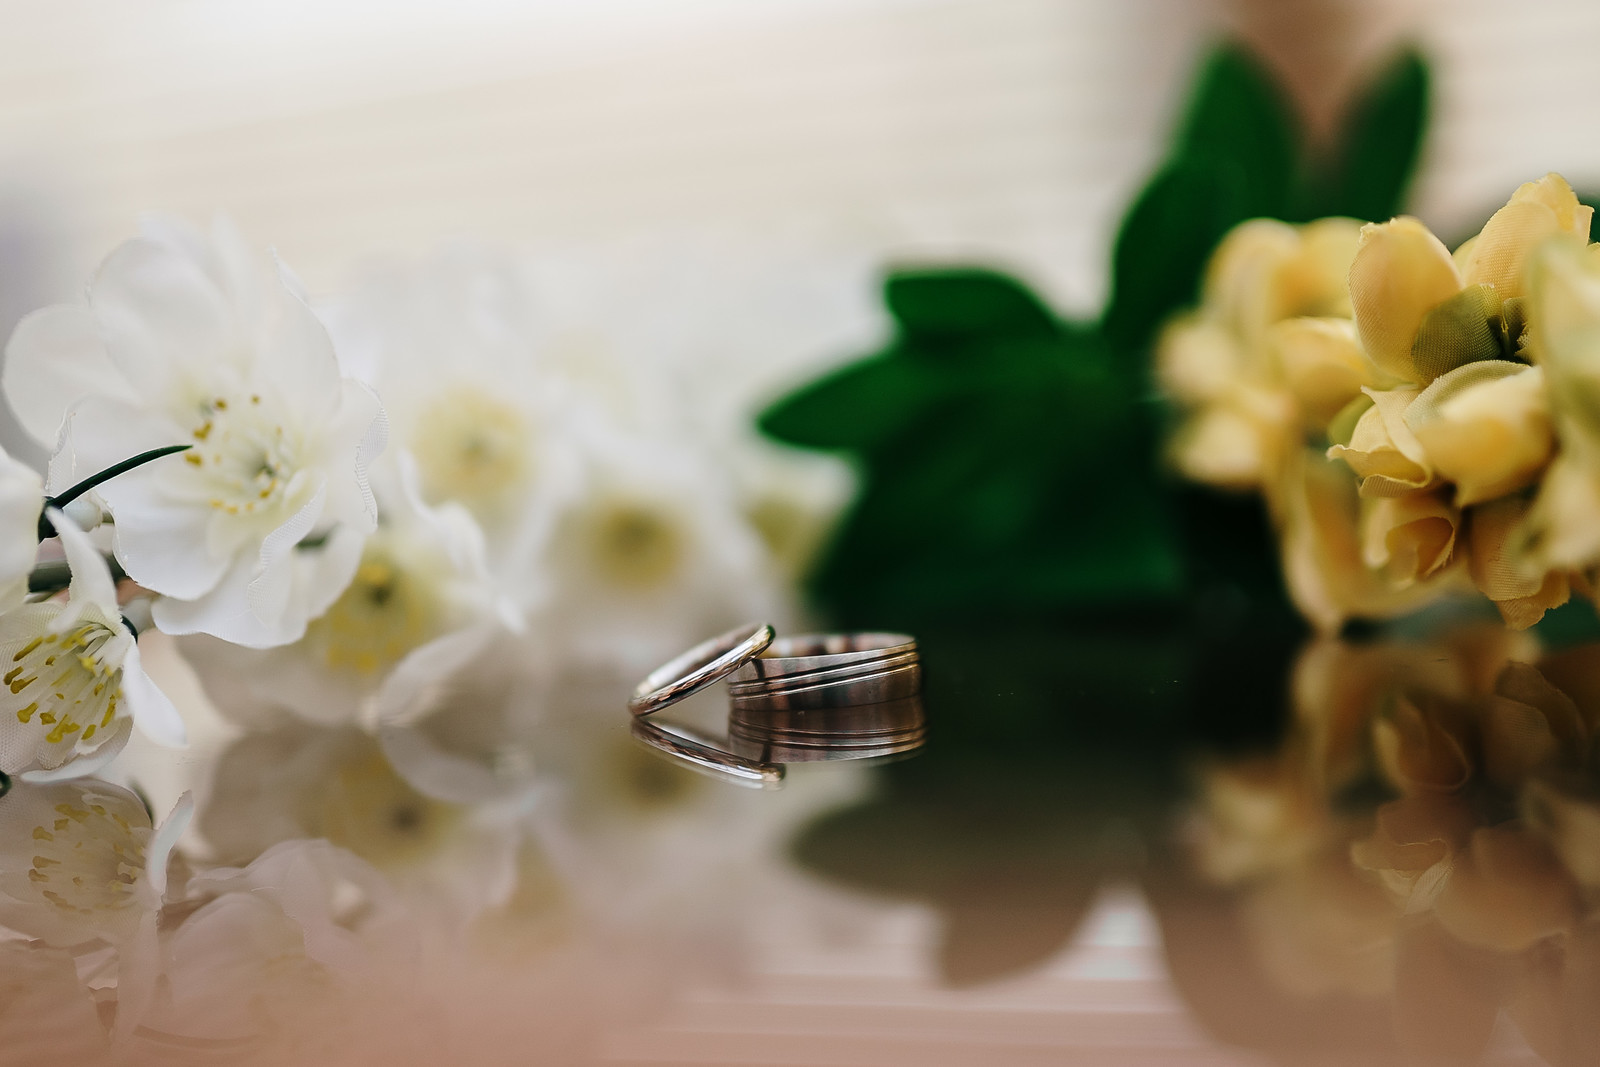 Wedding rings with flowers in the background